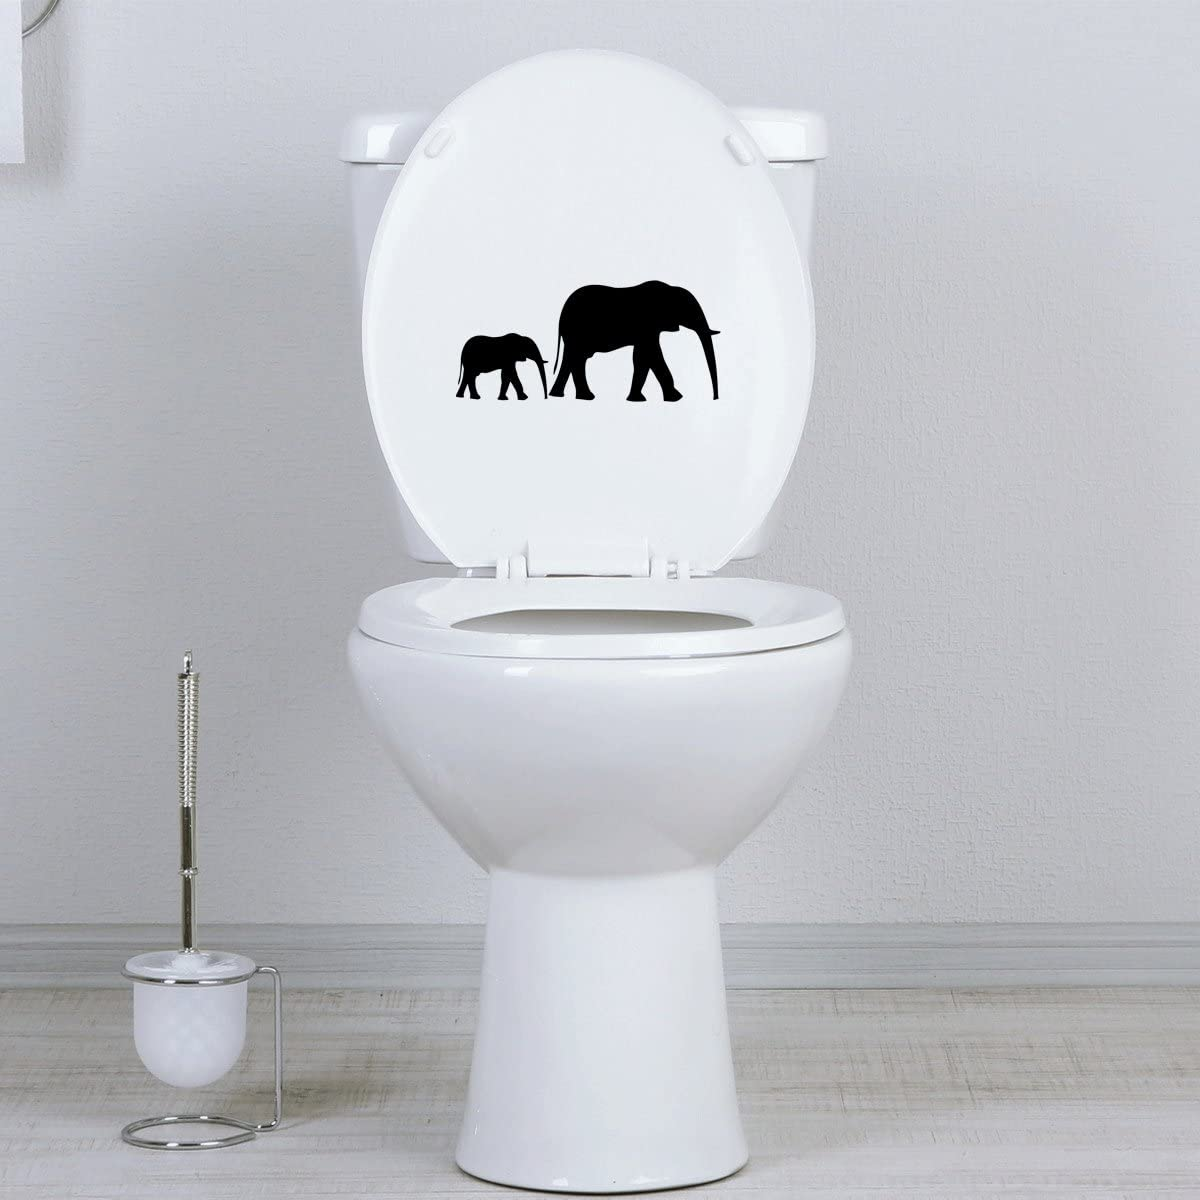 Silver Seat StickAny Bathroom Decal Series Elephant Silhouette Sticker for Toilet Bowl Bath